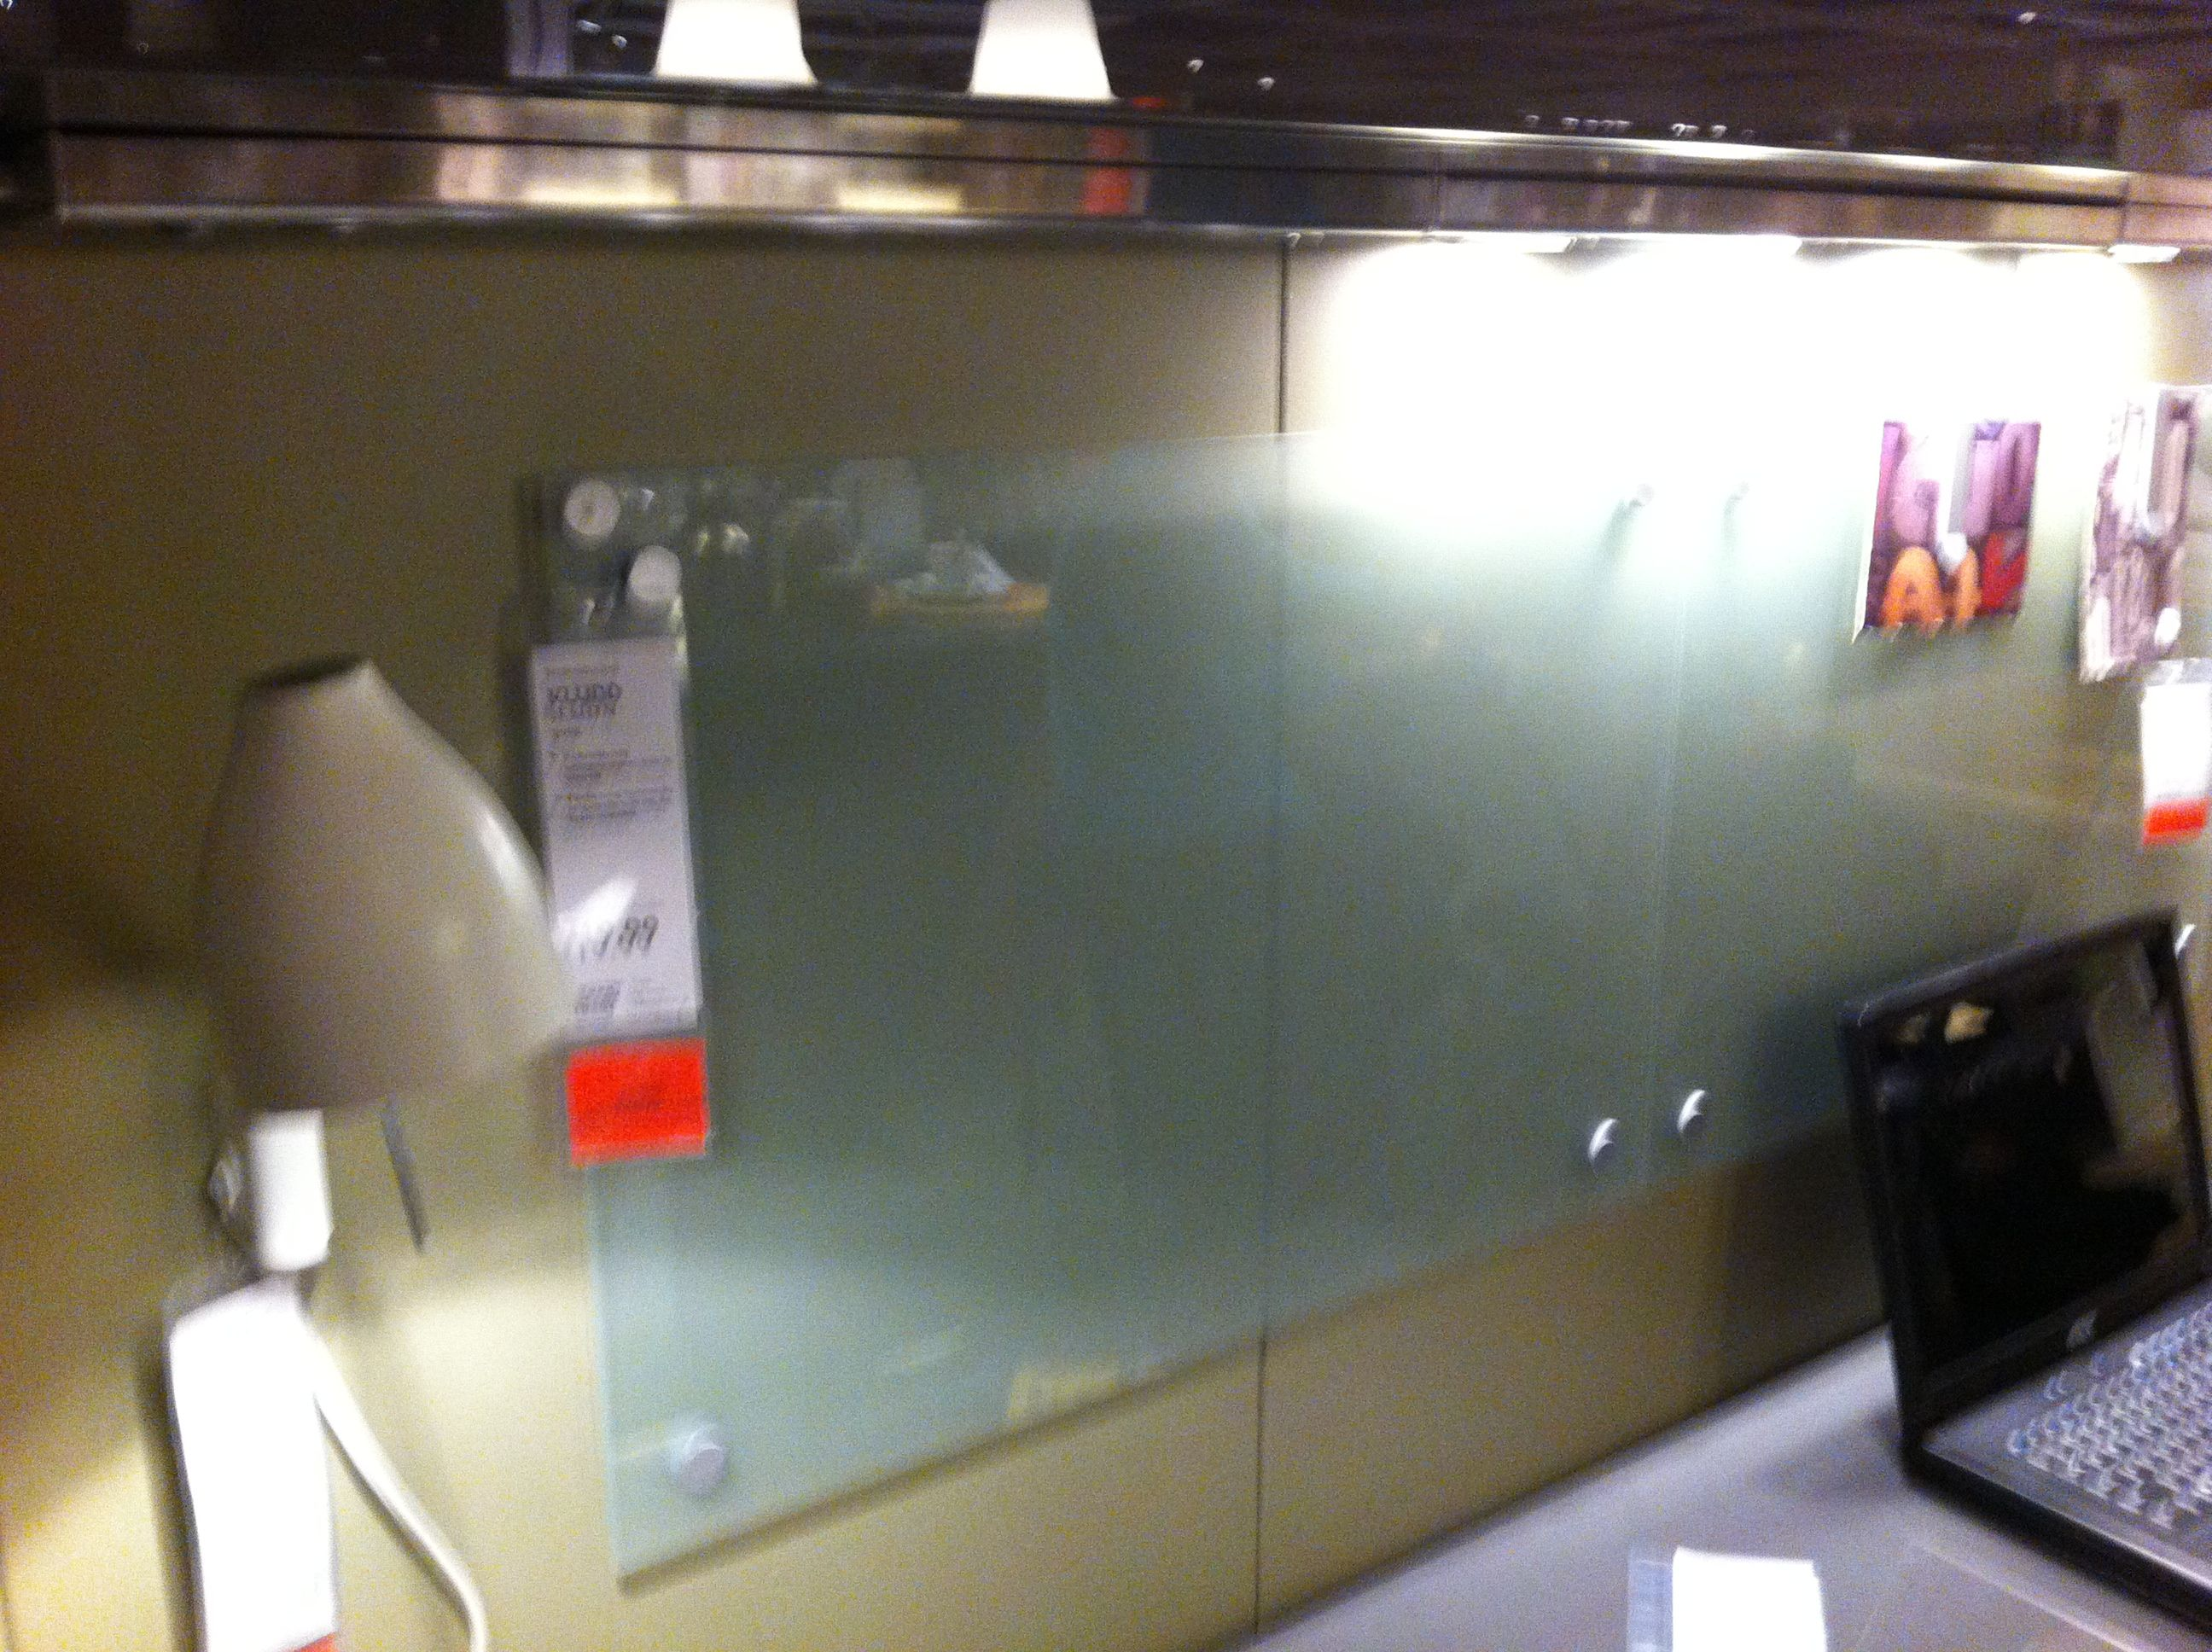 Frosted Glass White Boards 20 Each At Ikea Glass White Board White Board House Design